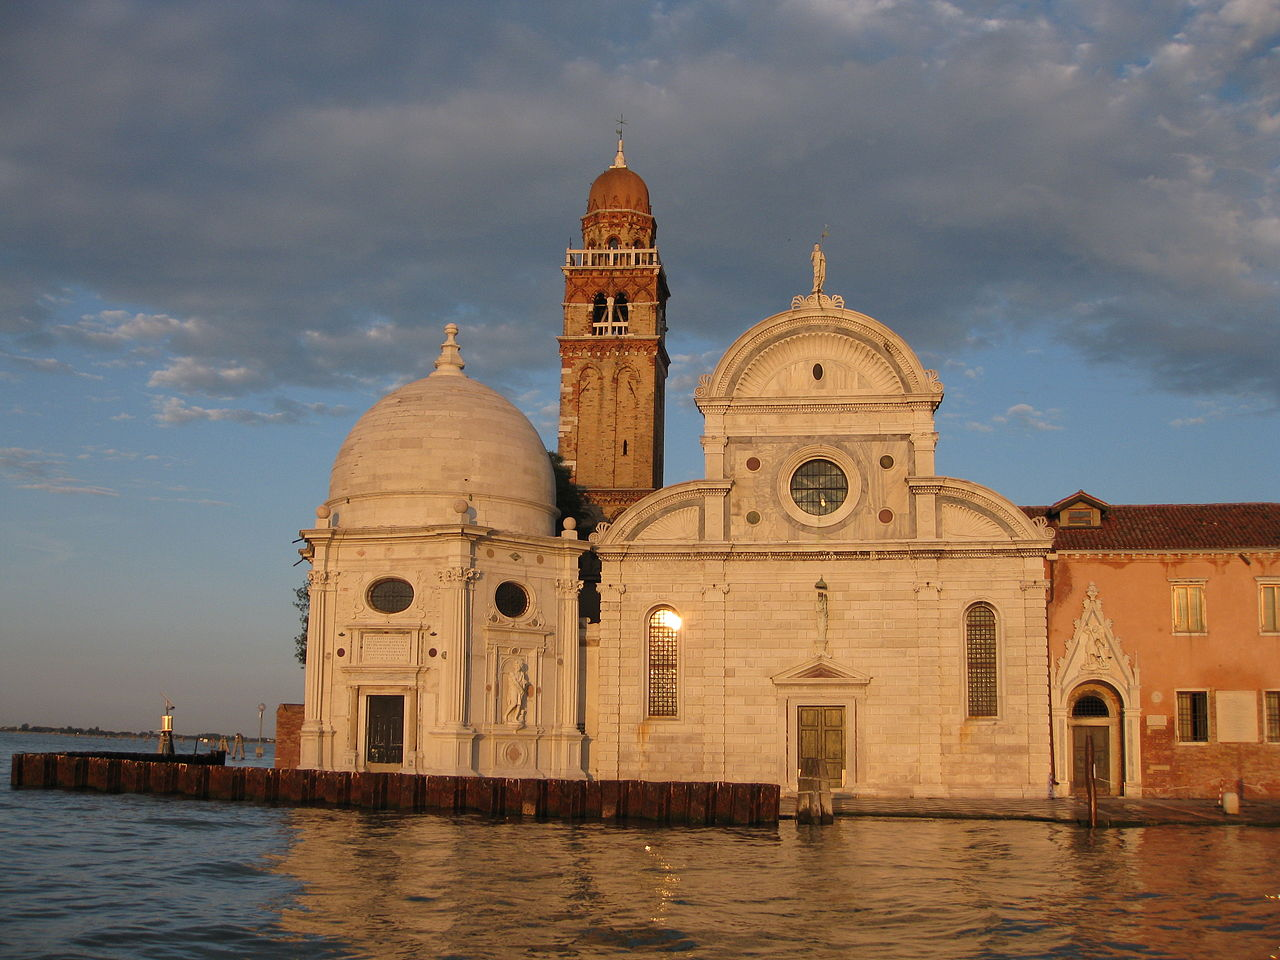 1280px-Venezia_-_Chiesa_di_San_Michele_in_Isola.JPG?uselang=it